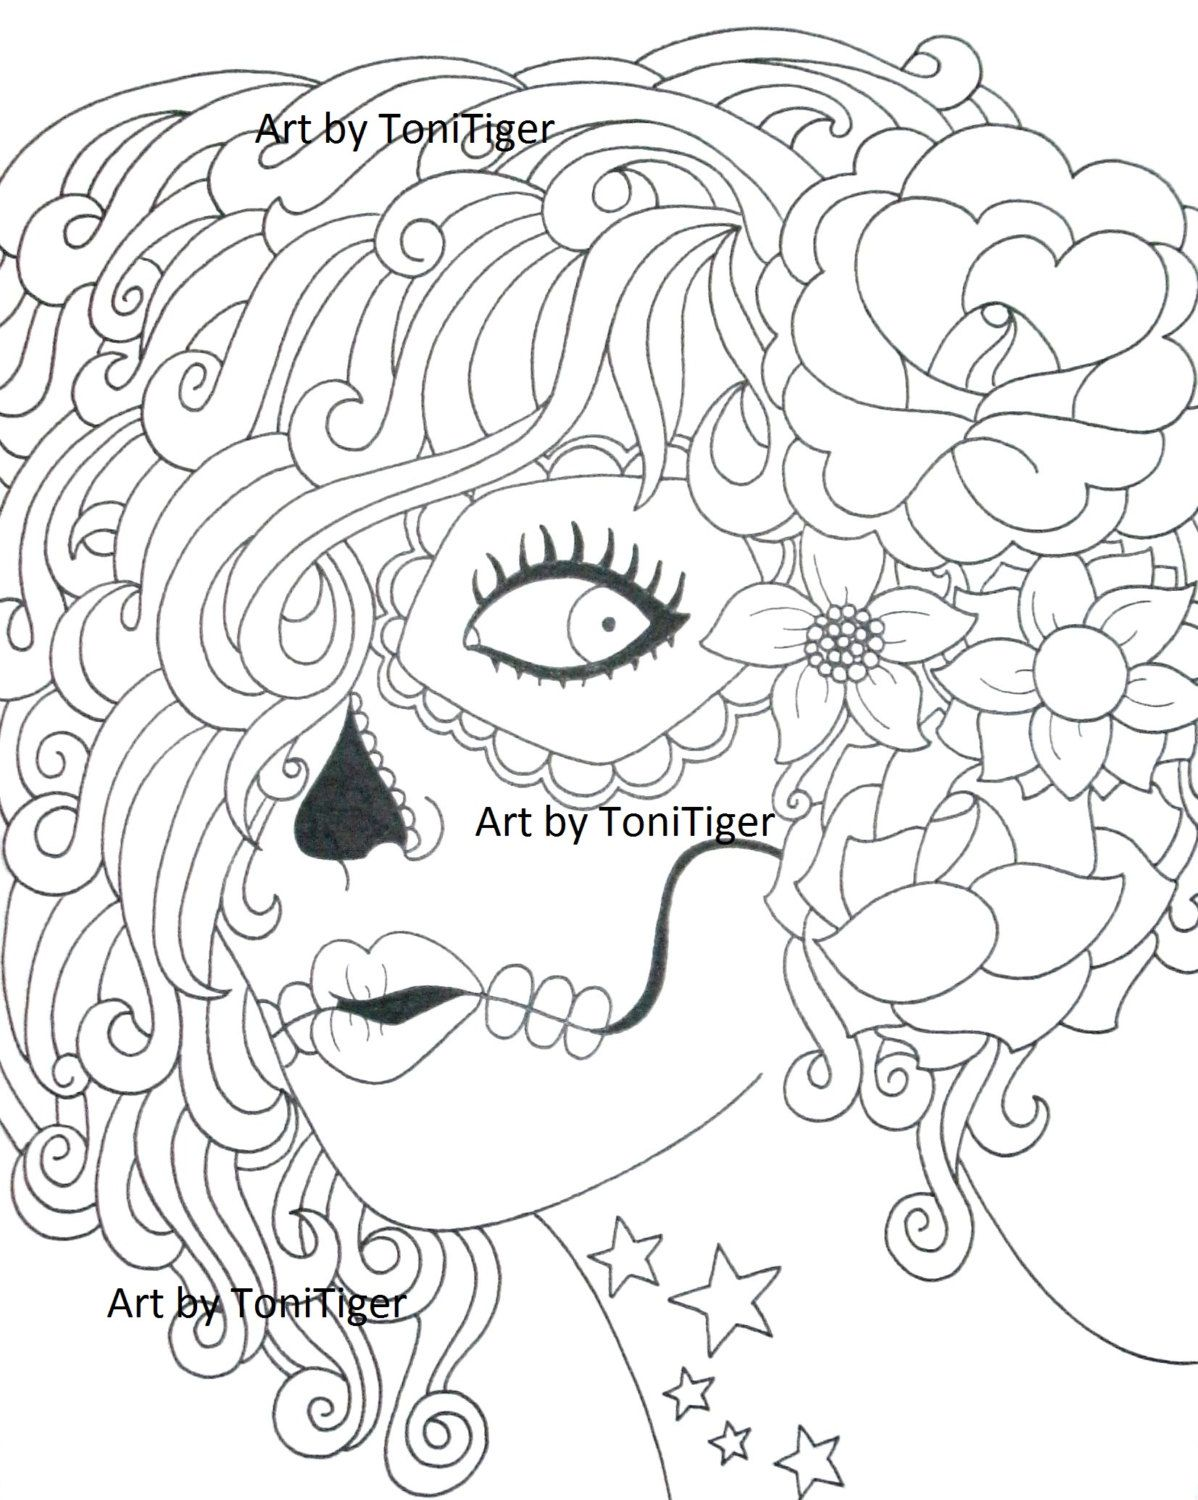 instant digital download coloring page sugar skull girl original day of the dead art - Downloadable Adult Coloring Pages